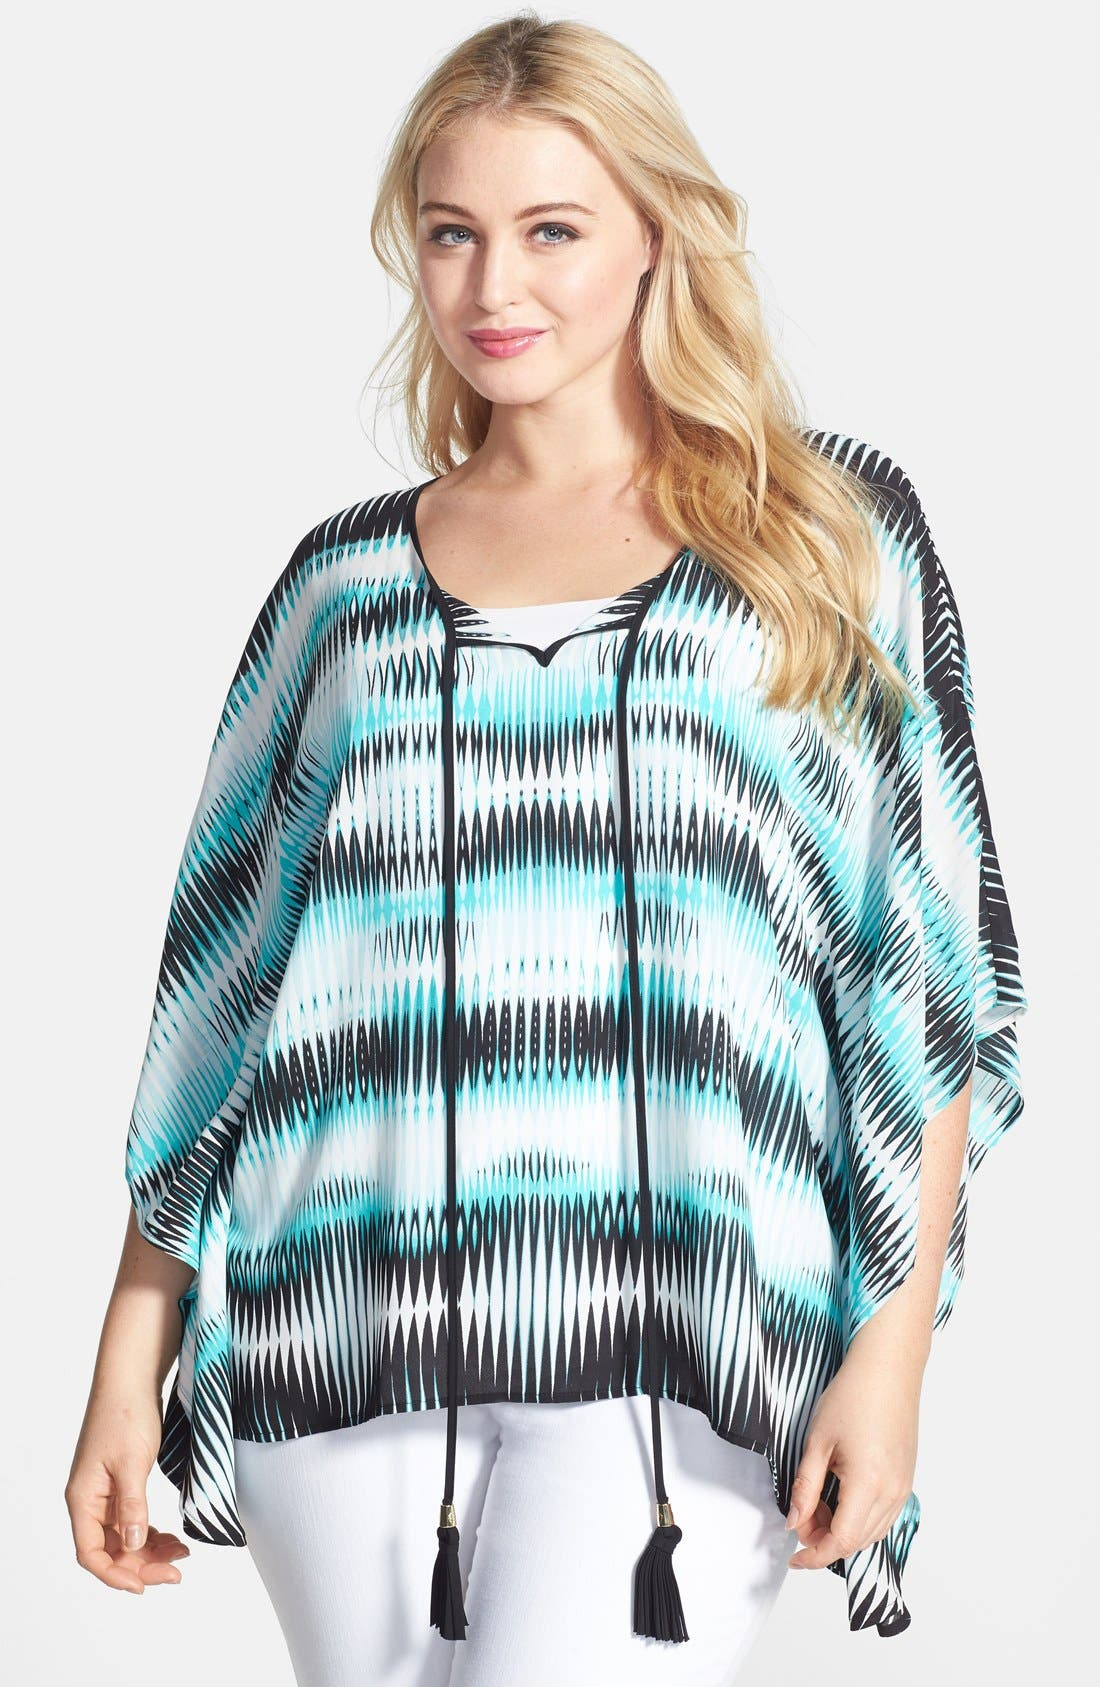 Alternate Image 1 Selected - Vince Camuto 'Linear Echoes' Caftan Style Top (Plus Size)